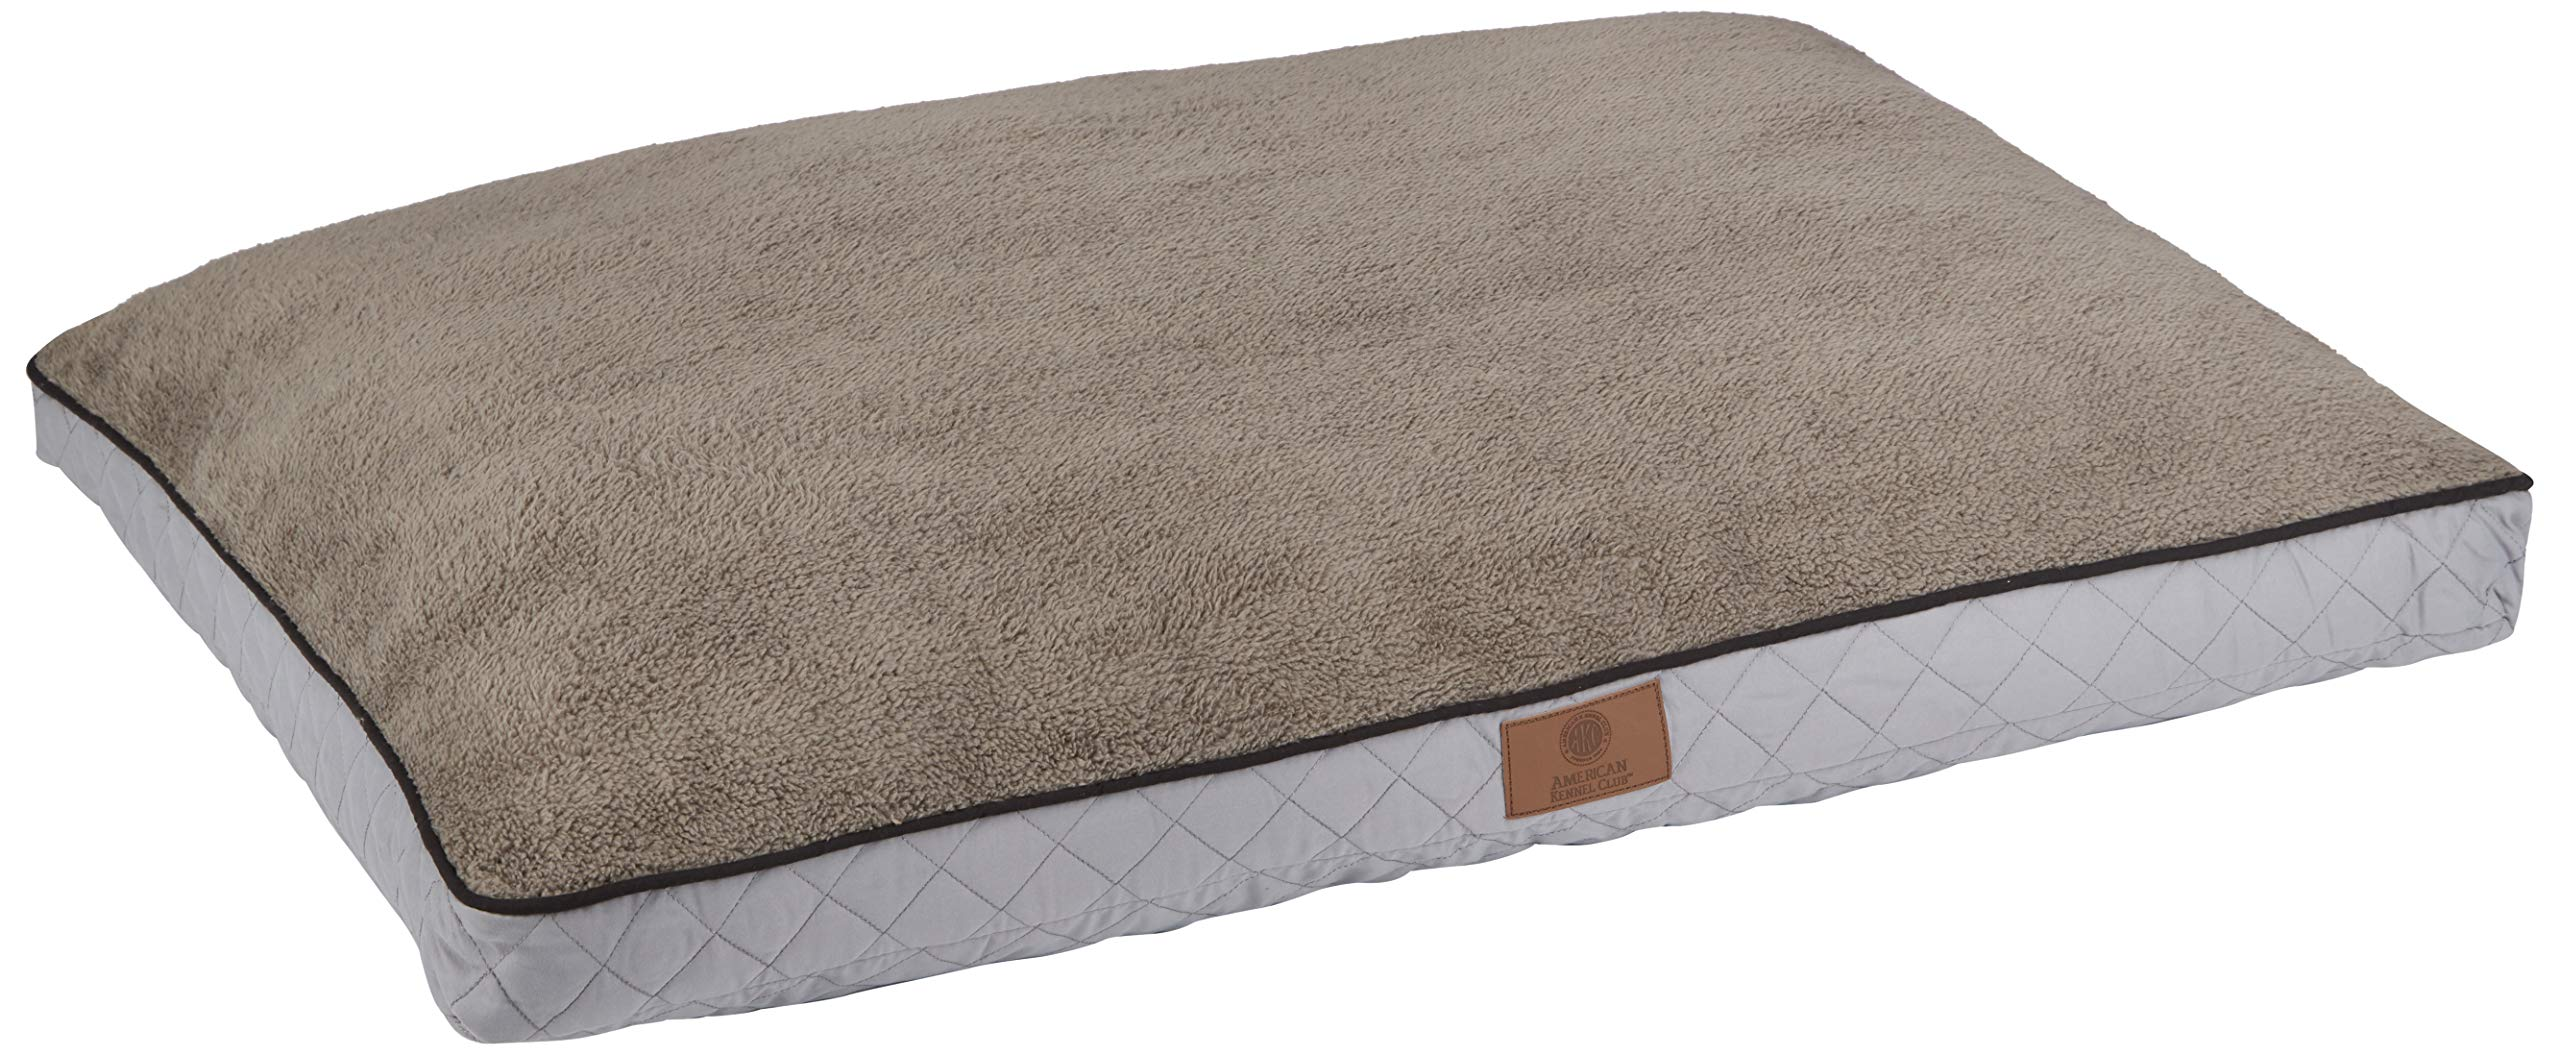 American Kennel Club AKC9690GRAY Diamond Stitched Reversible Pet Gusset Bed